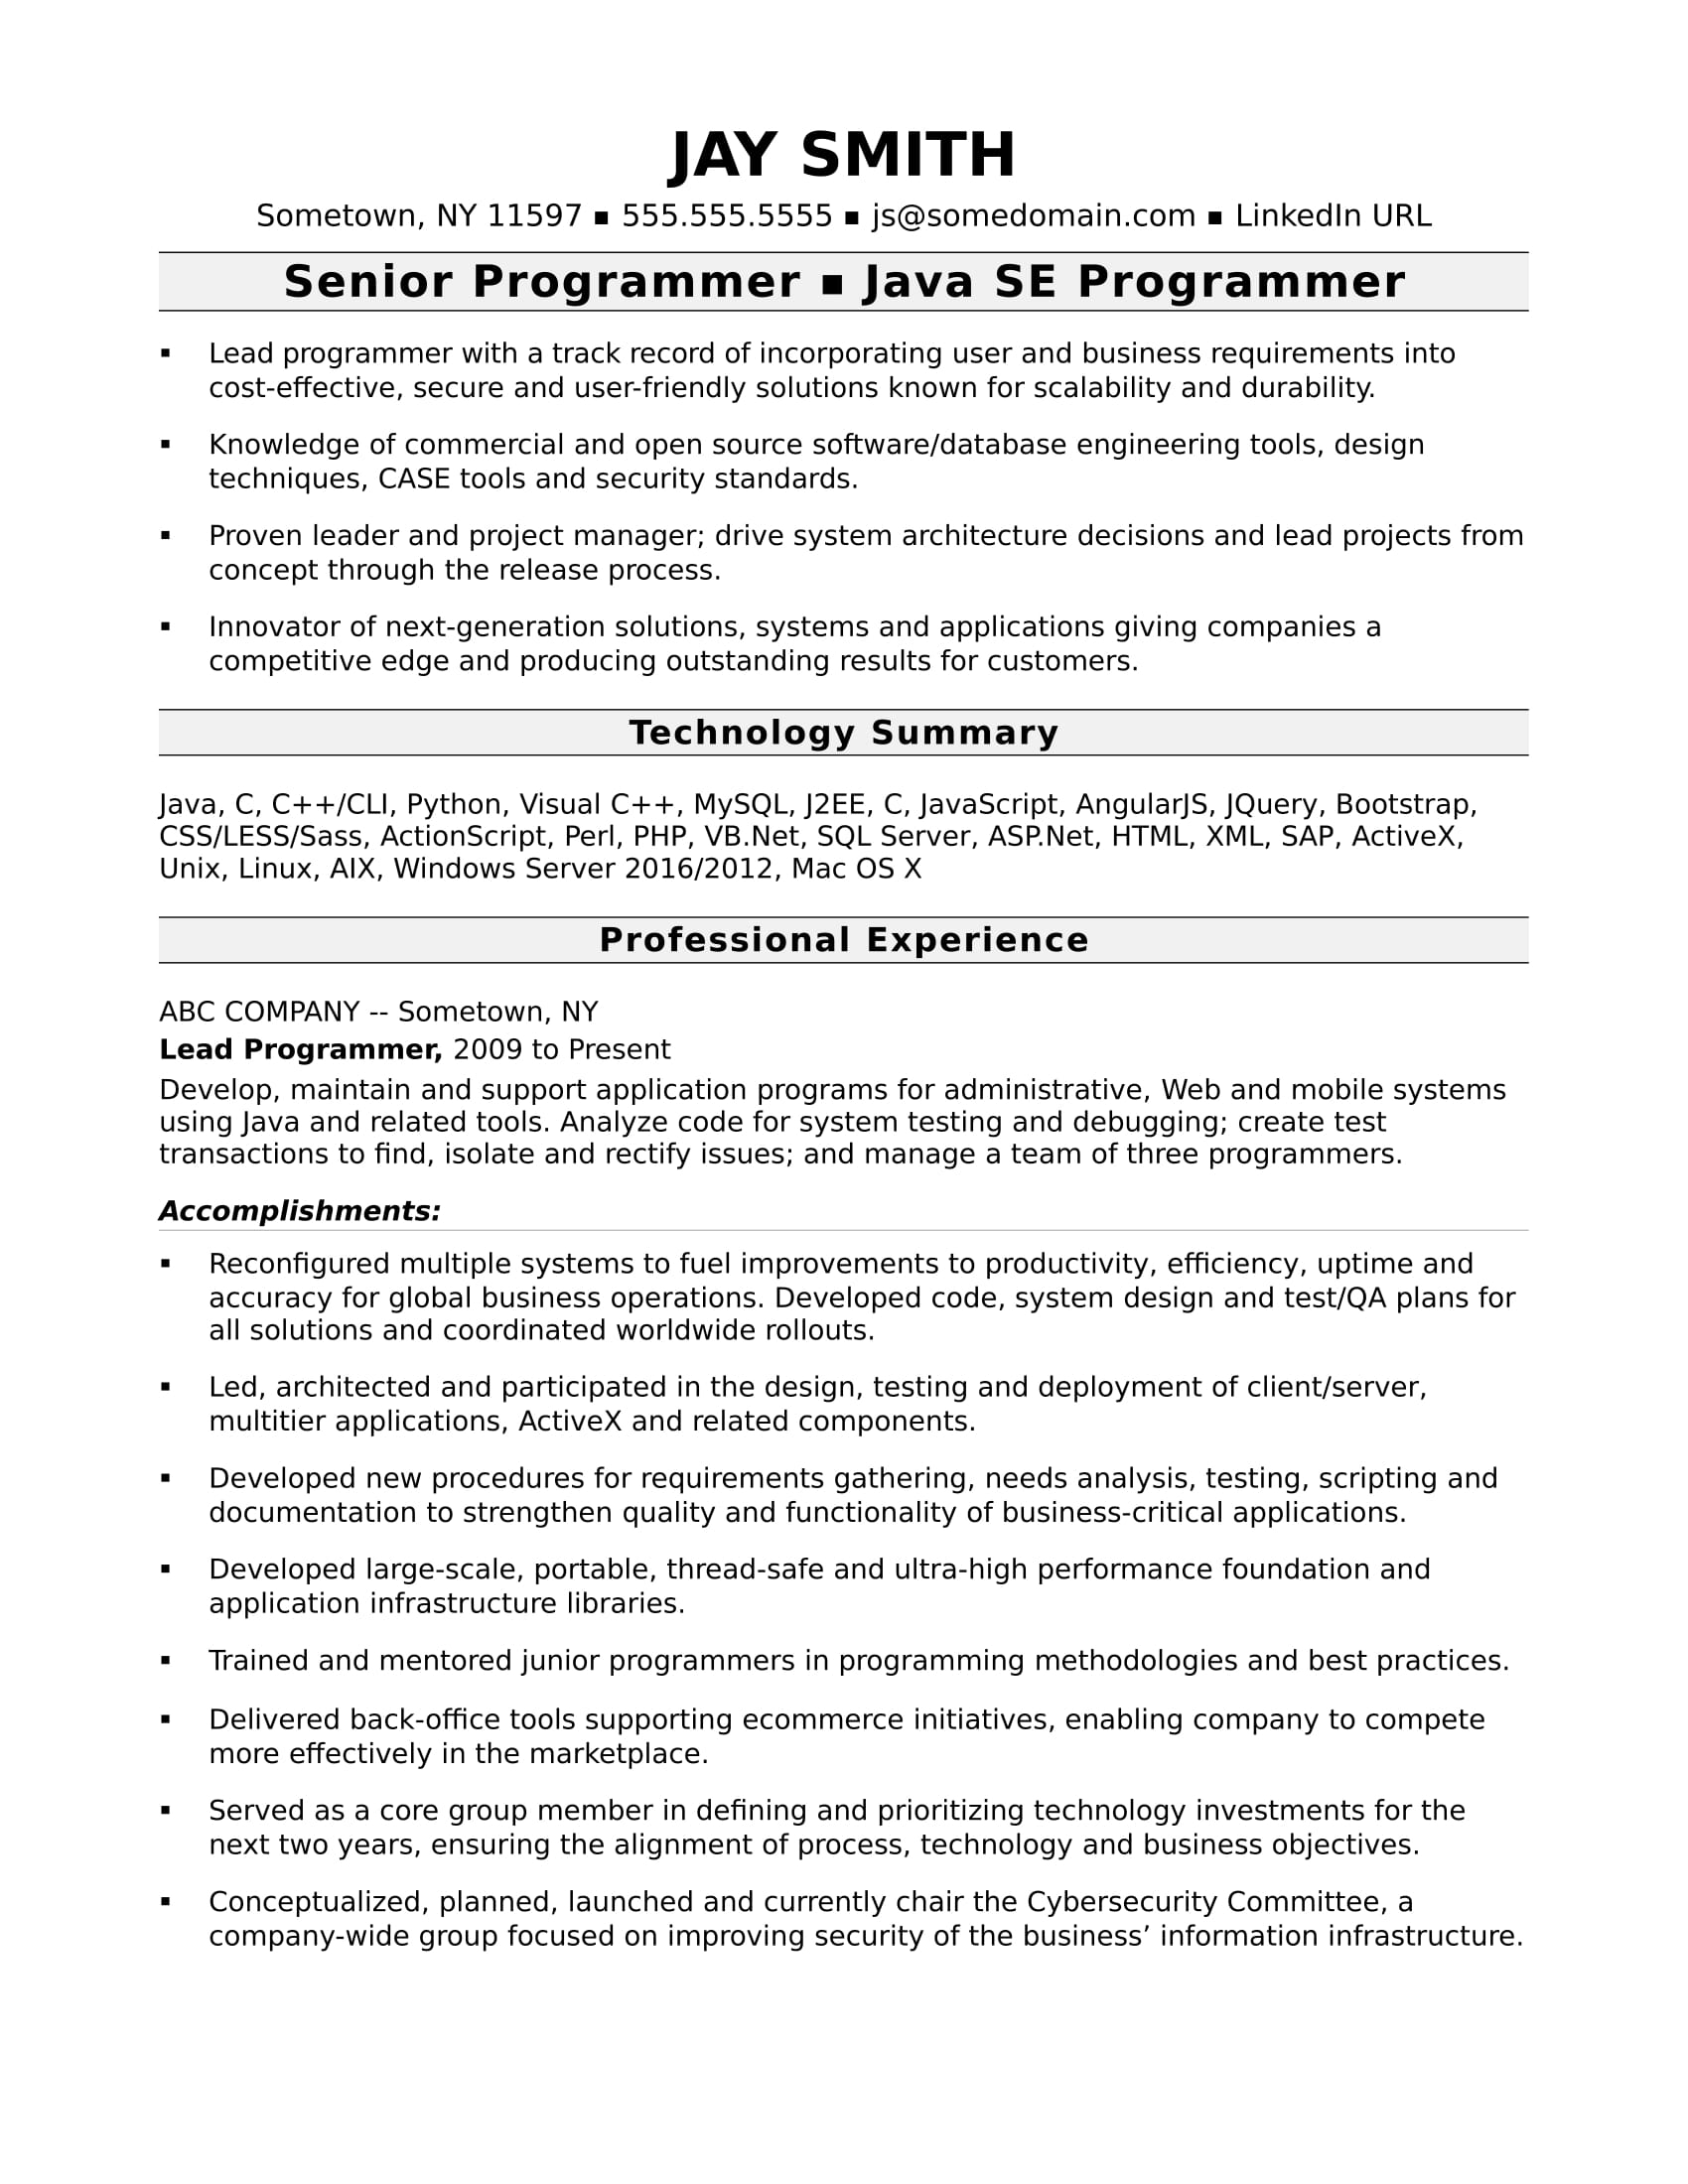 Sample Resume For An Experienced Computer Programmer  Python Developer Resume